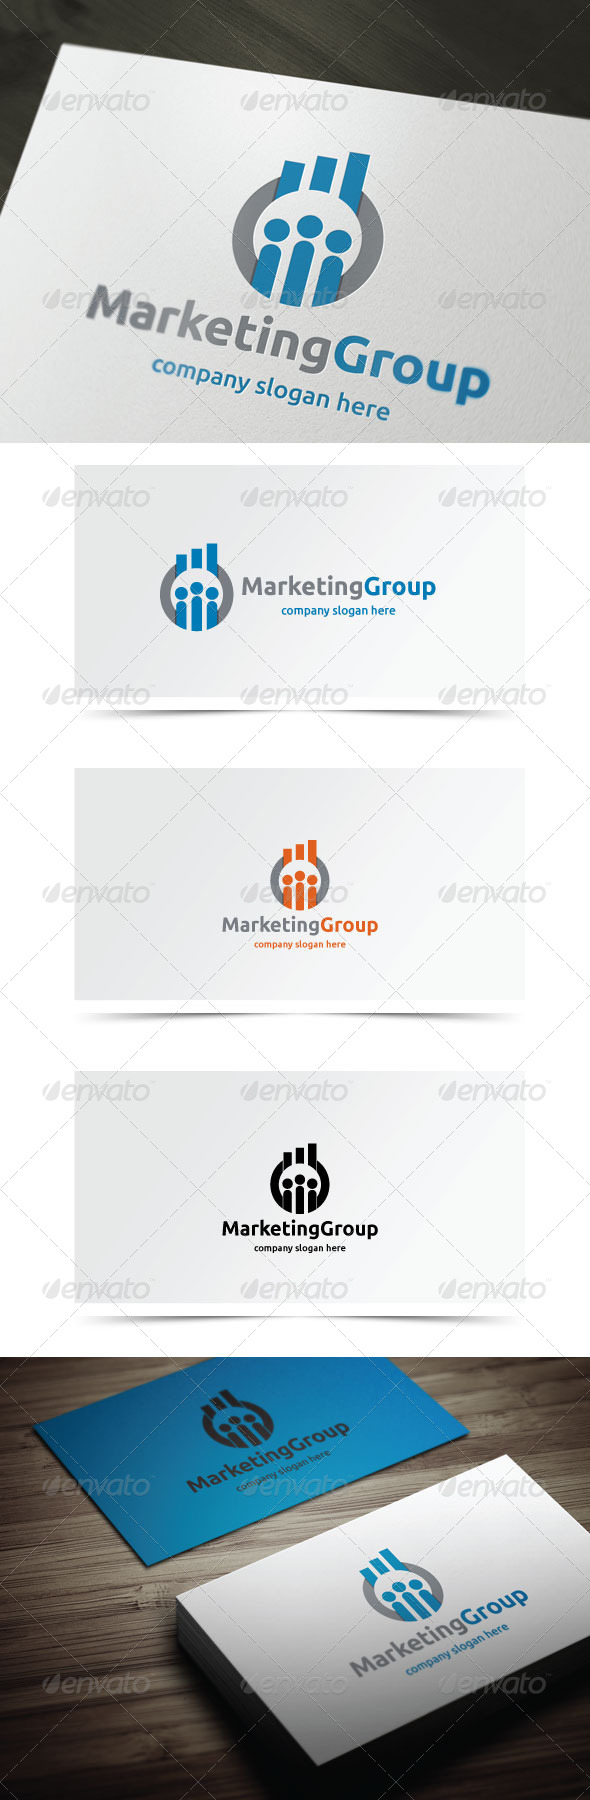 GraphicRiver Marketing Group 6363771